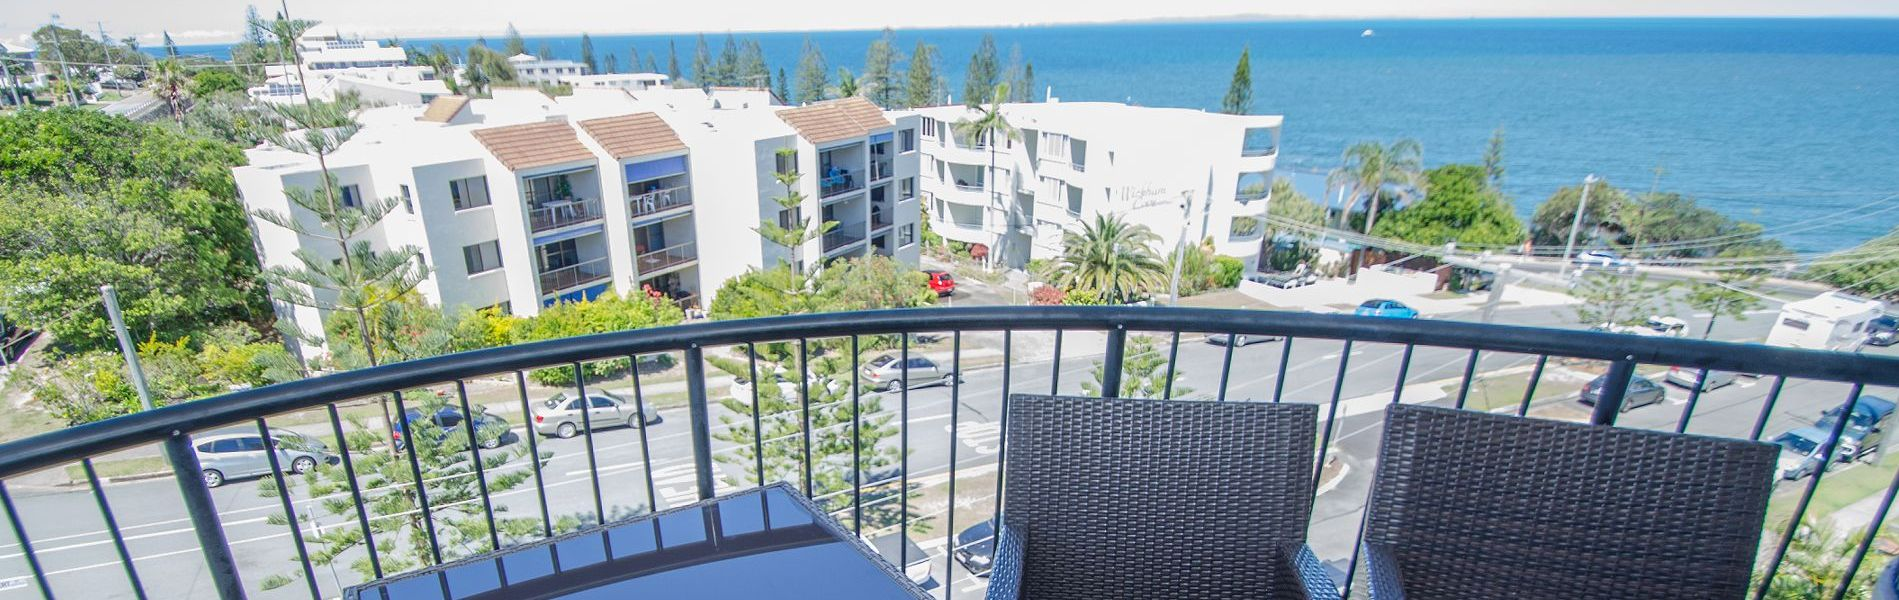 Meridian Caloundra Apartment Balcony Views